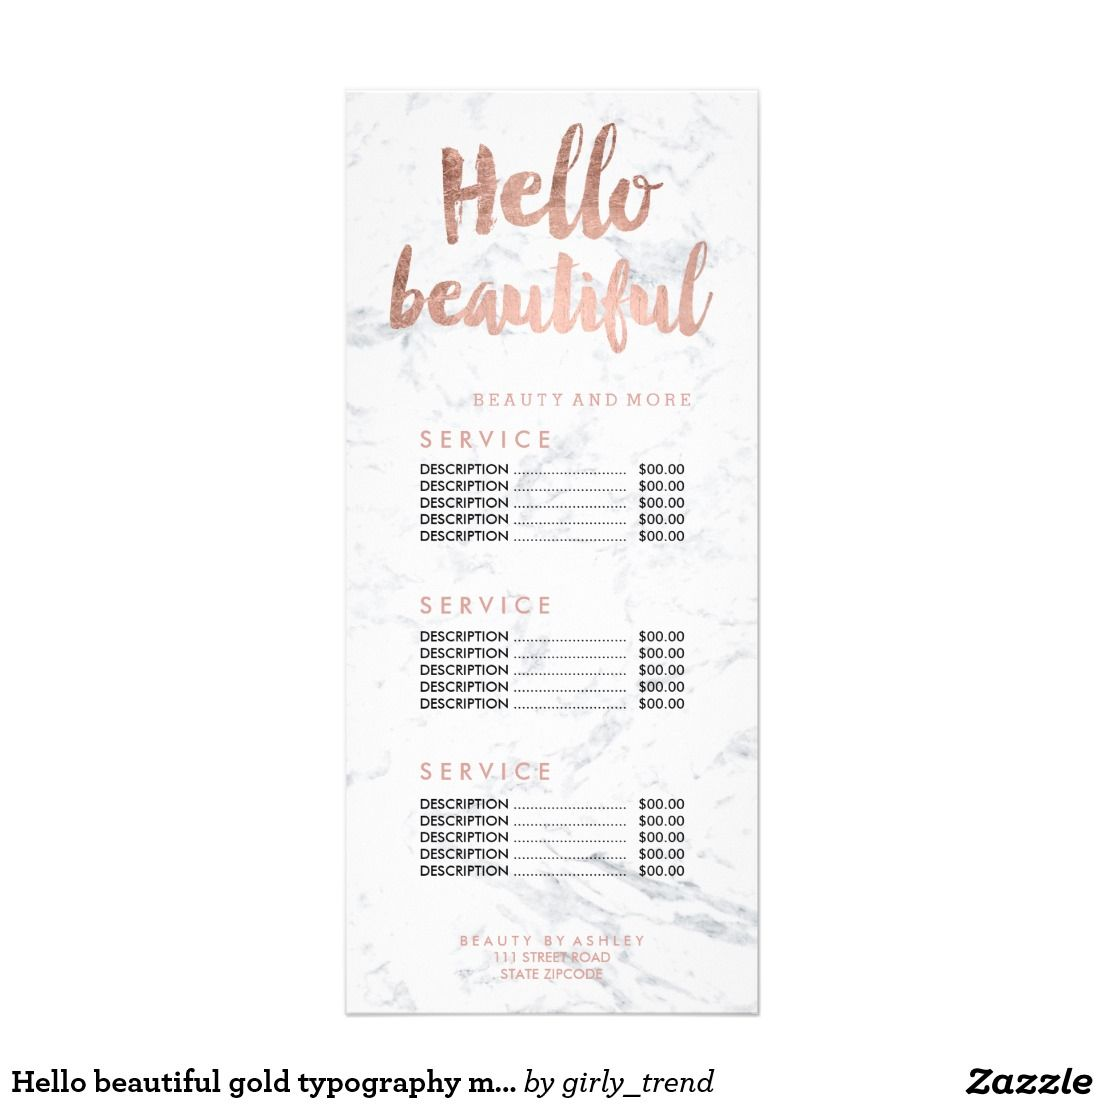 Hello beautiful gold typography marble price list rack card hello beautiful gold typography marble price list rack card colourmoves